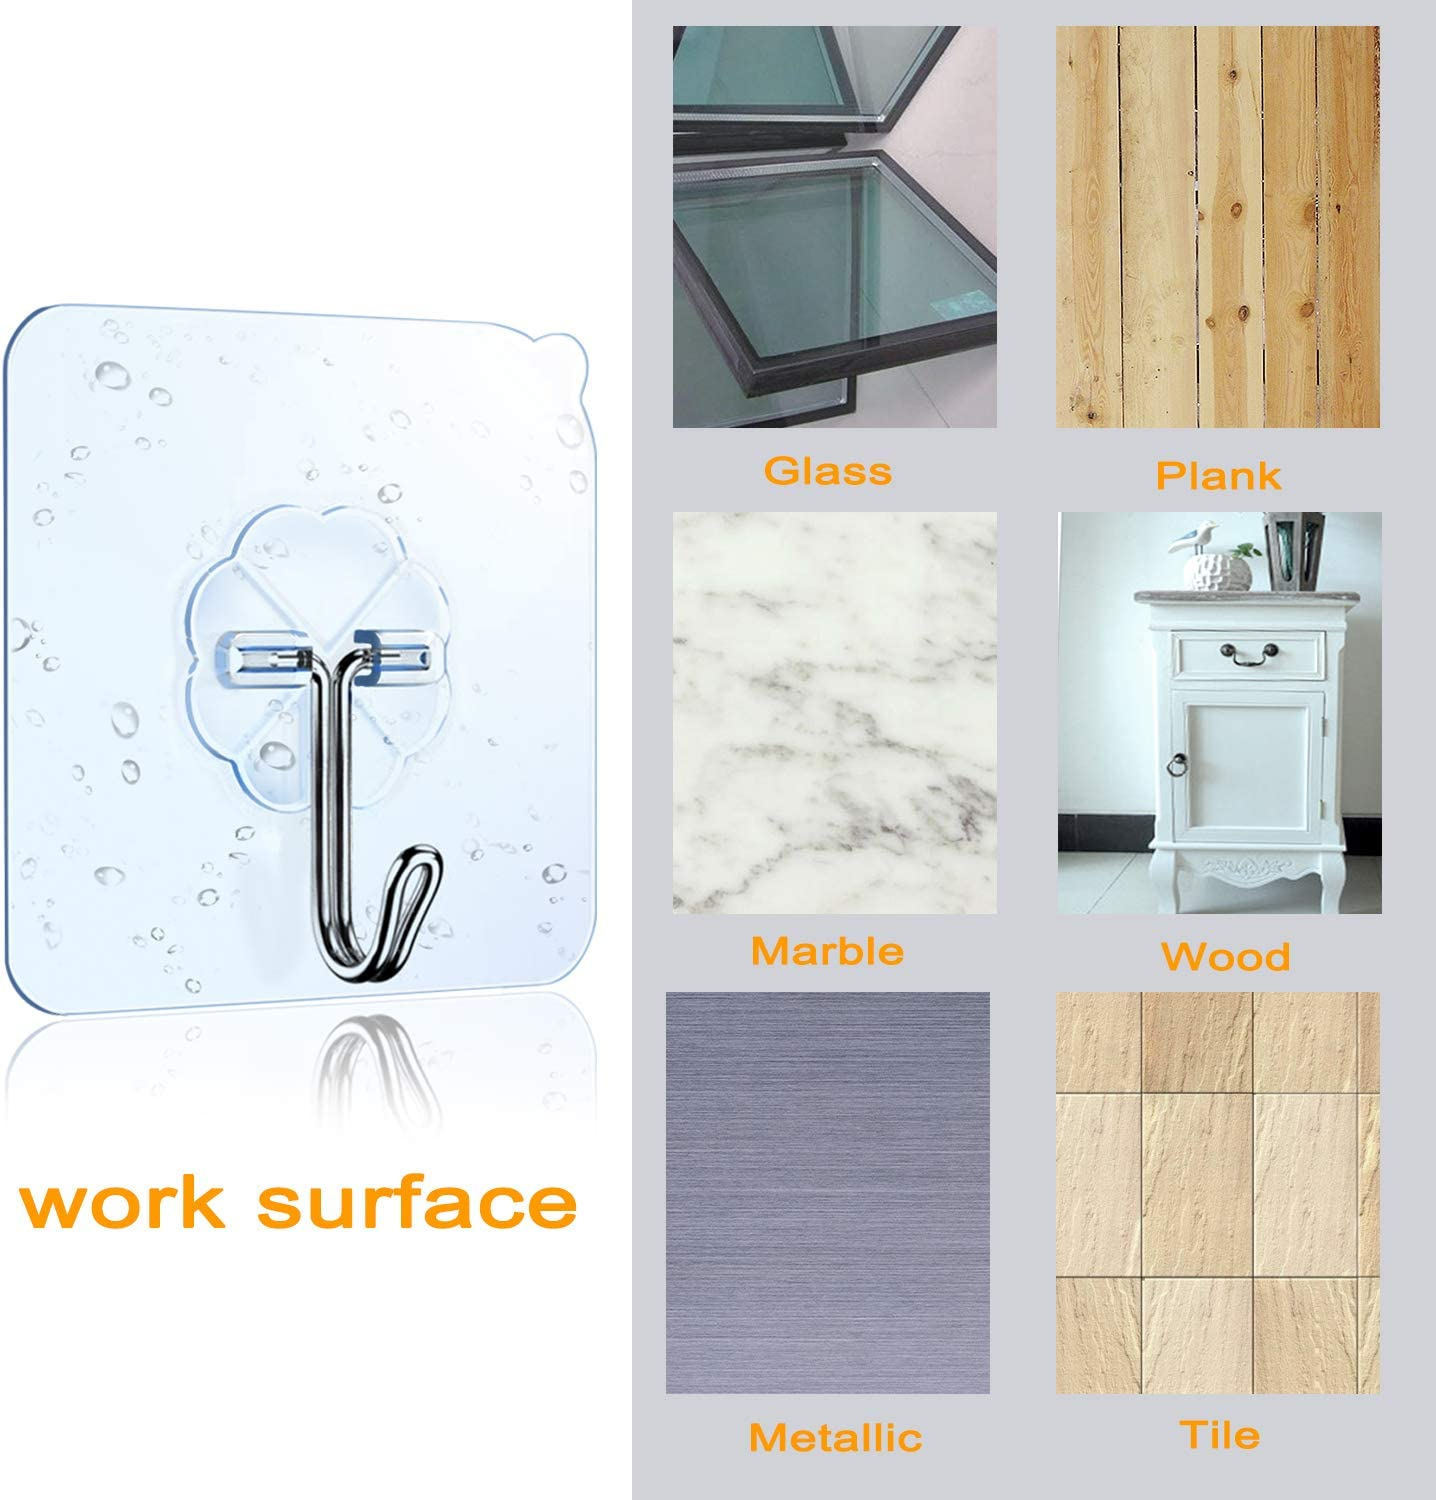 Oilproof Waterproof Hooks for Kitchen Bathroom Cabinet DSMY Set of 27 Self Adhesive Hooks 180/° Rotating Heavy Duty Wall Hooks Transparent Reusable Seamless Hooks 304 Stainless Hook